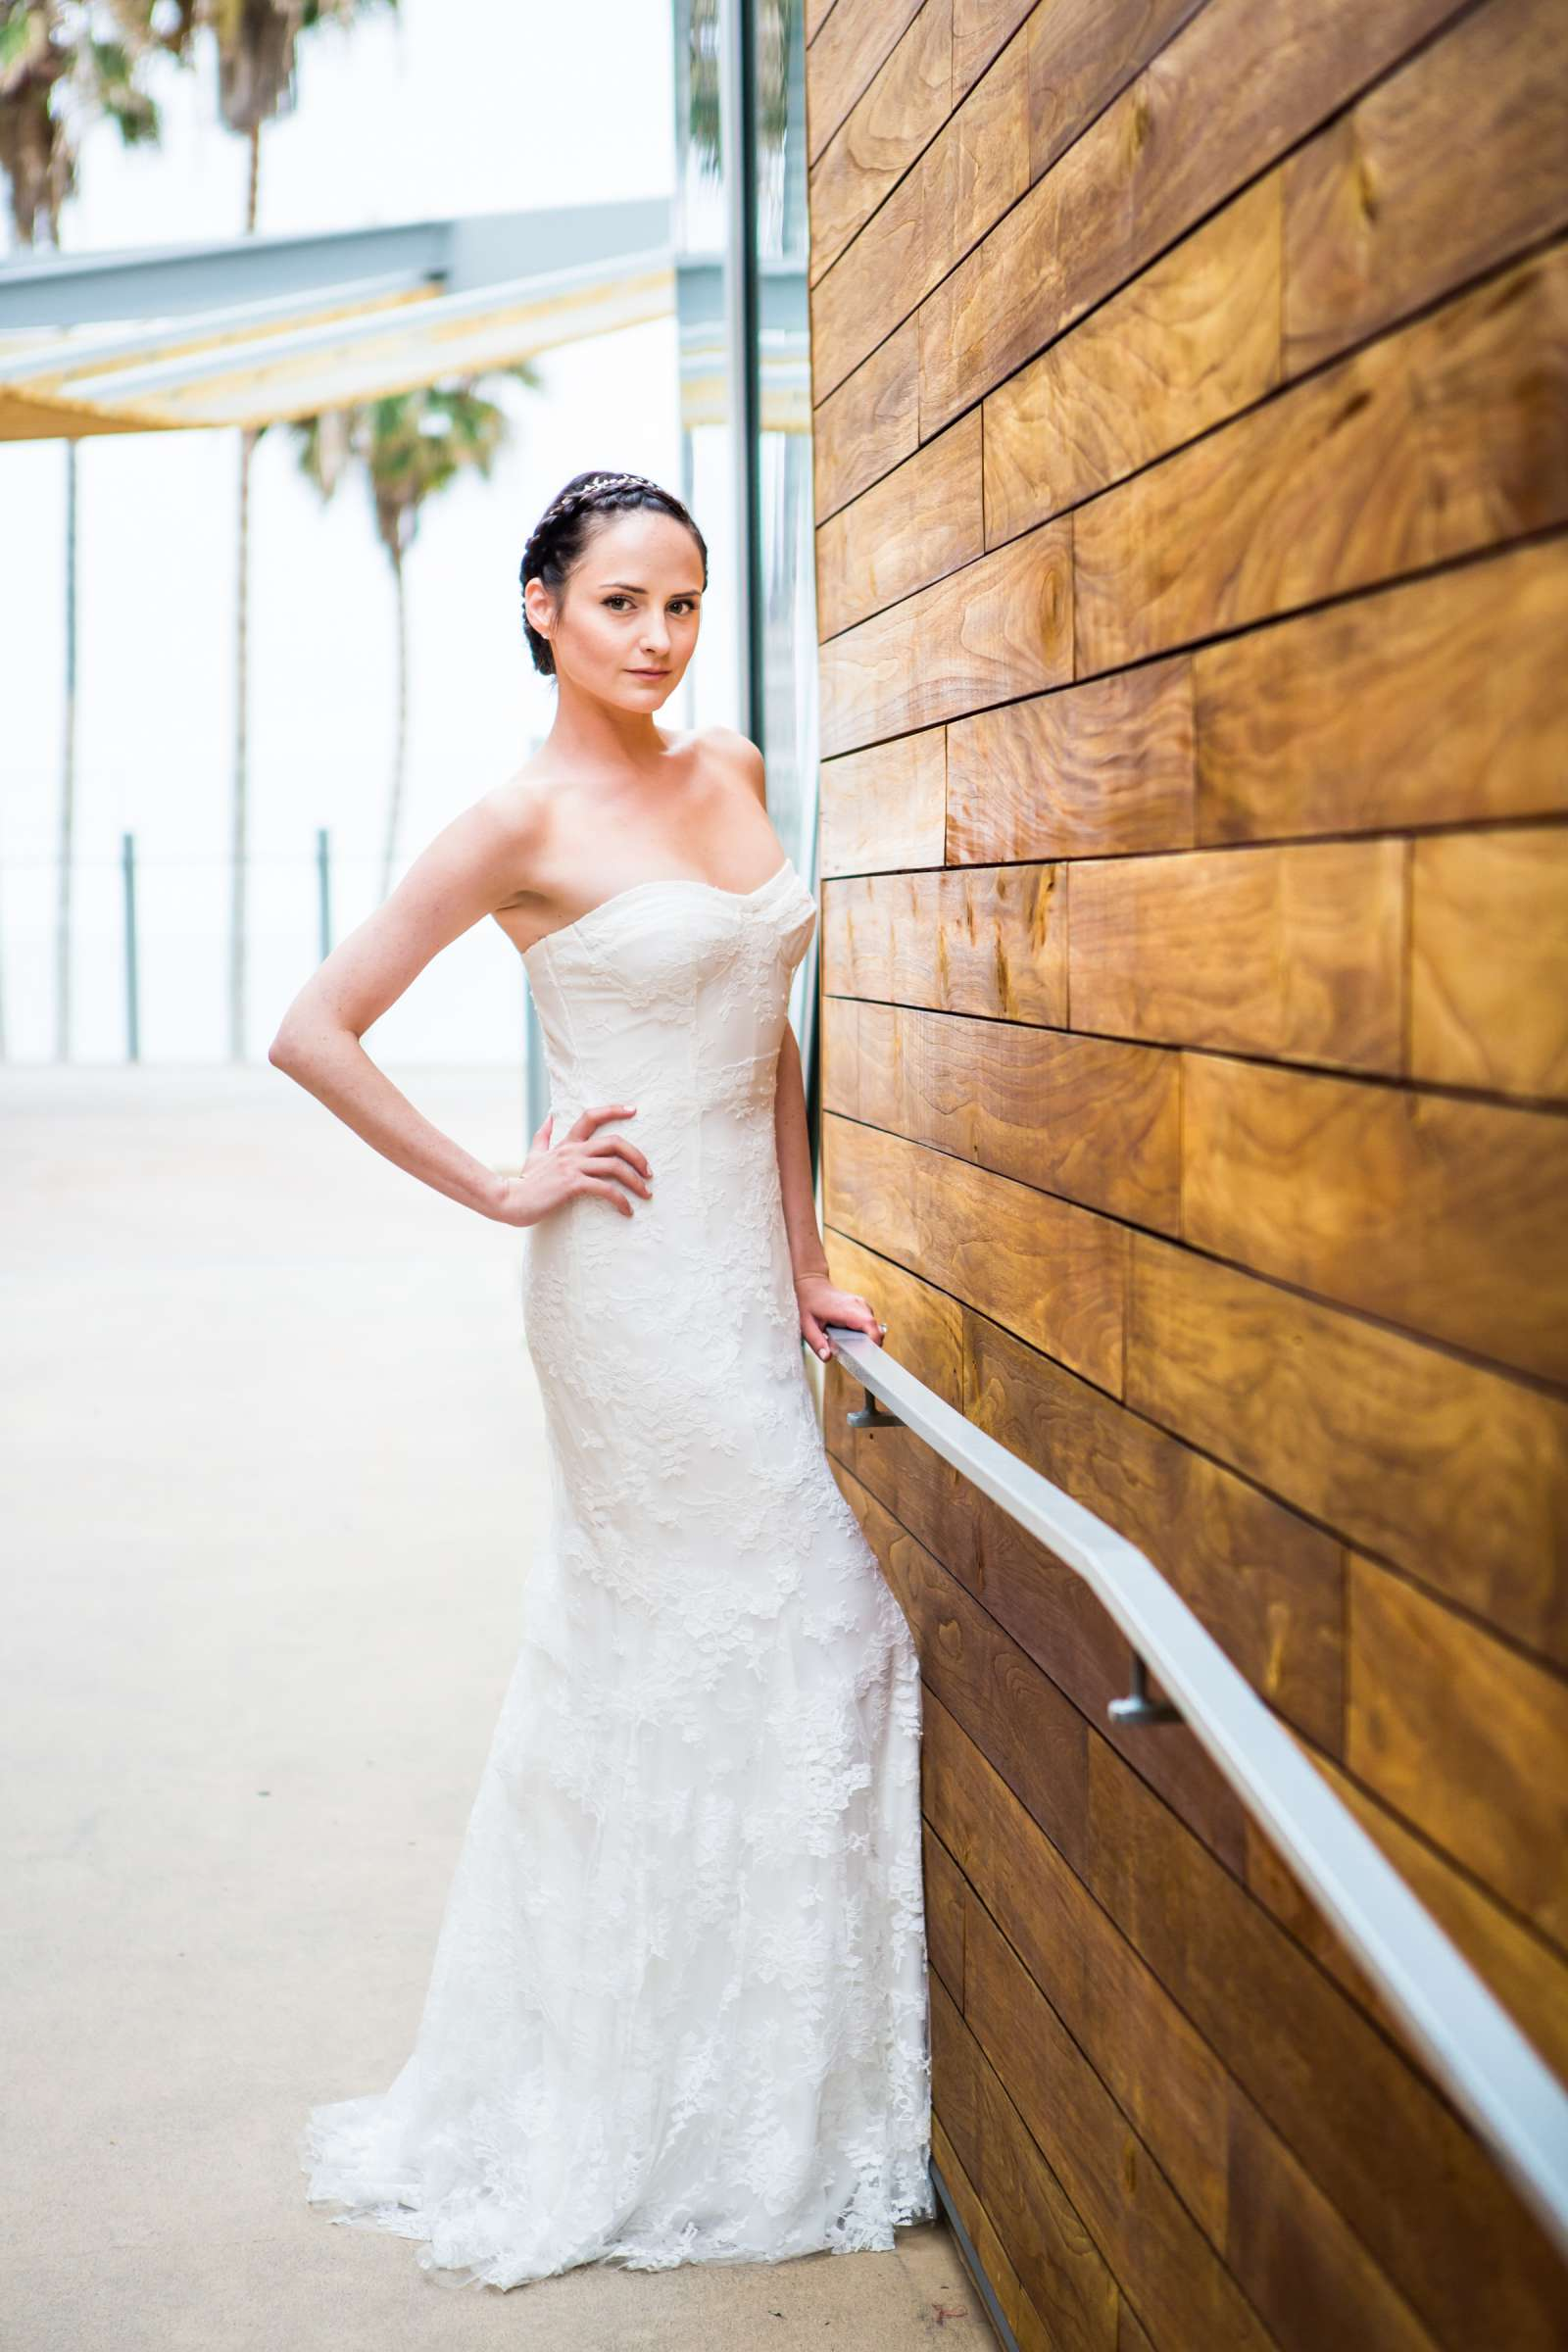 Scripps Seaside Forum Wedding coordinated by Francine Ribeau Events, Shaina and Christopher Wedding Photo #43 by True Photography